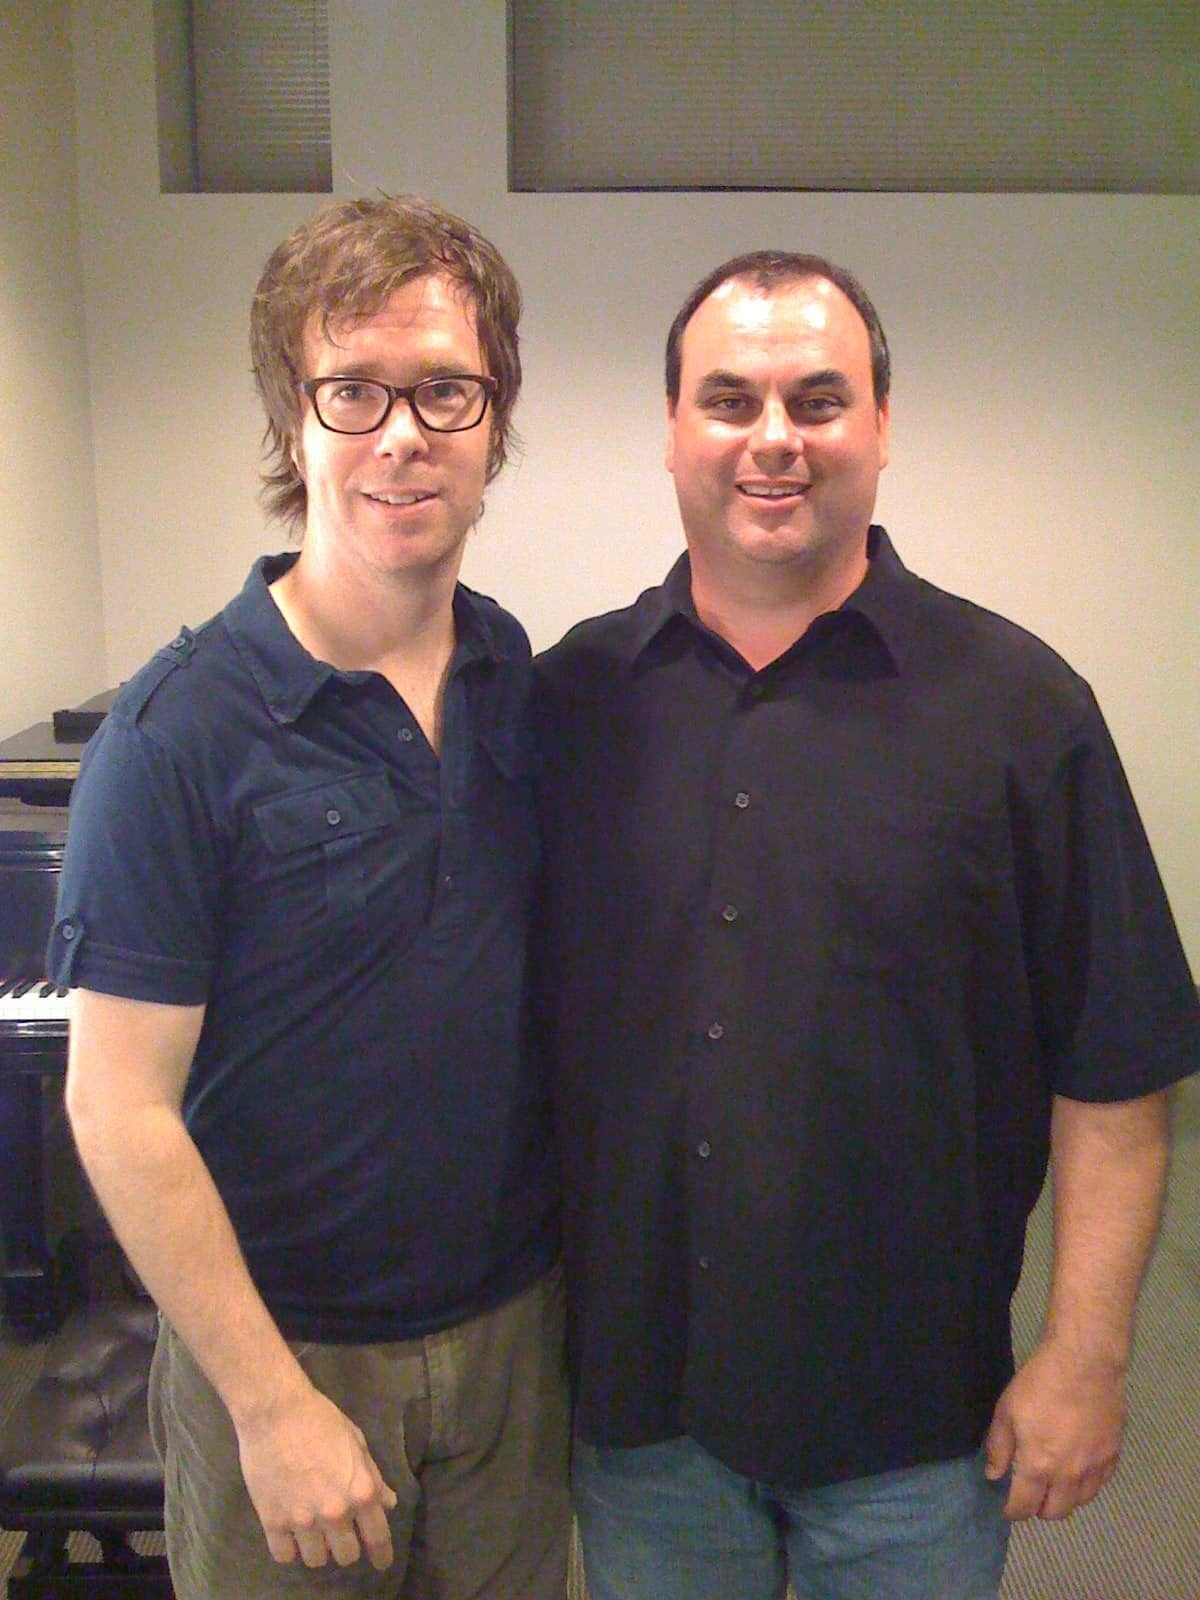 Jim with Ben Folds